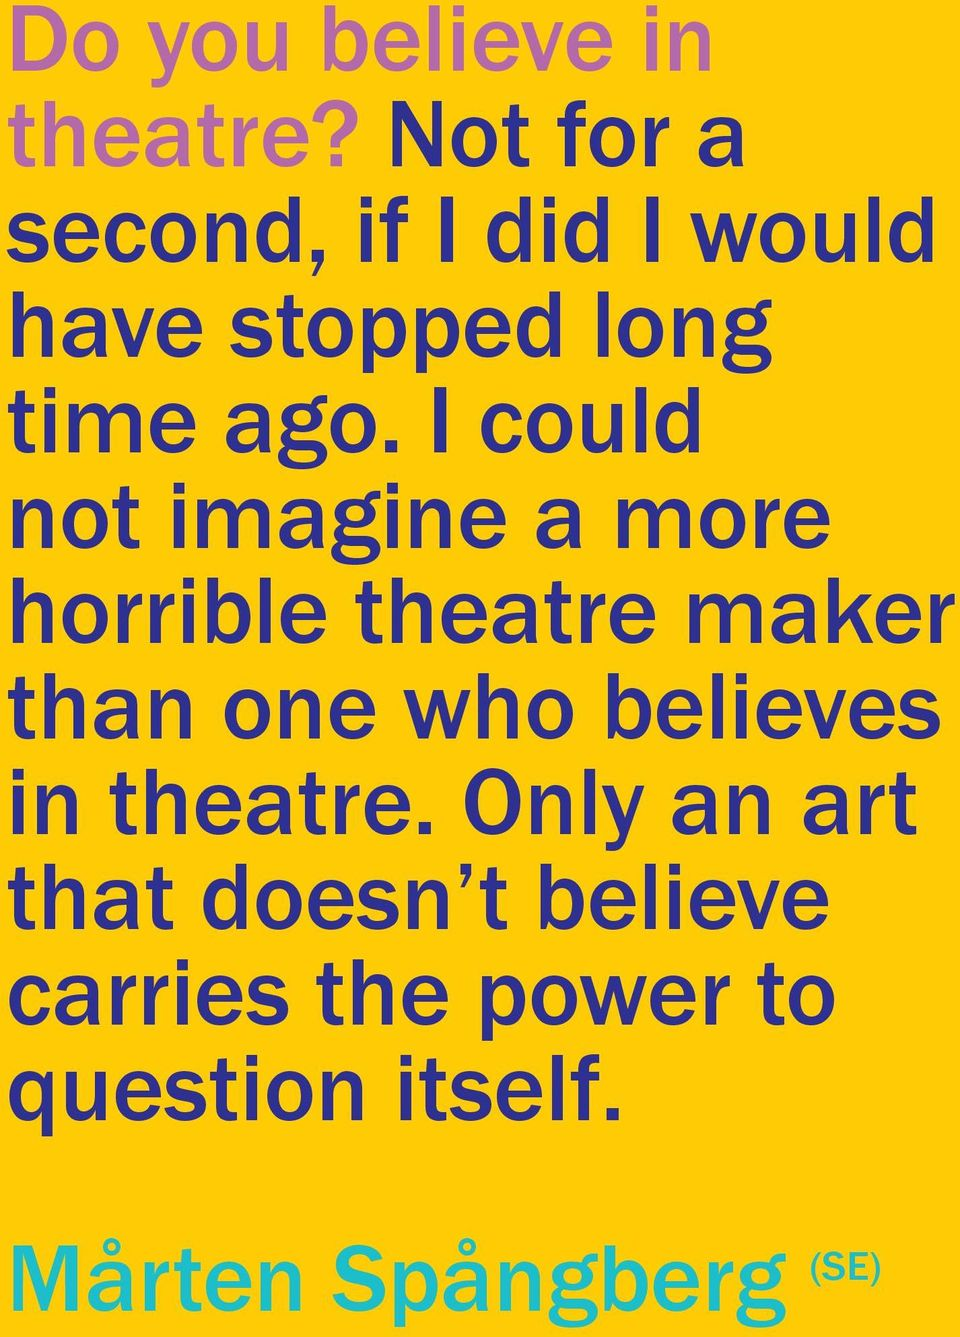 I could not imagine a more horrible theatre maker than one who